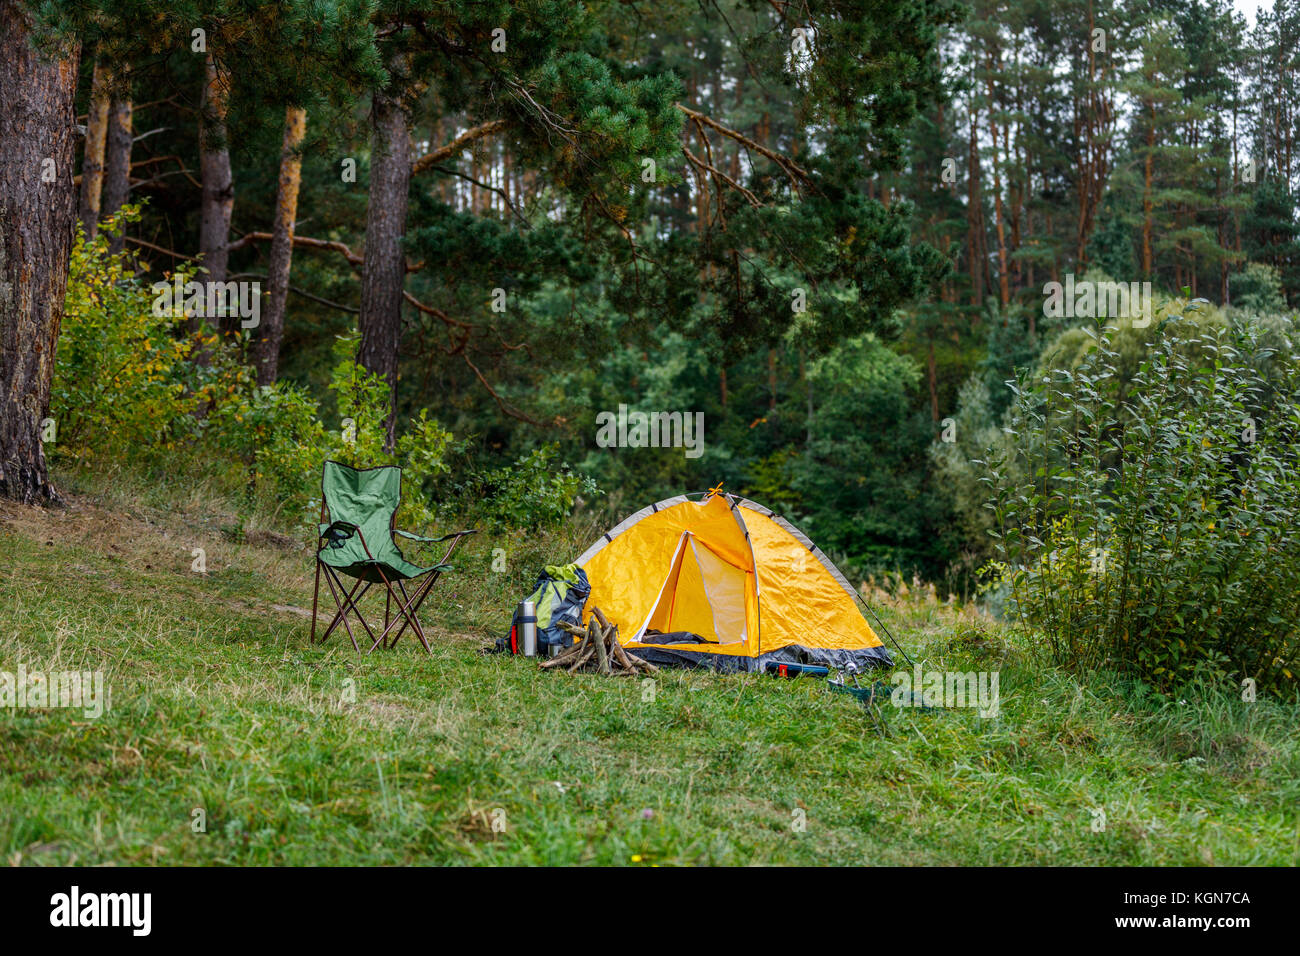 camping with tent in forest - Stock Image